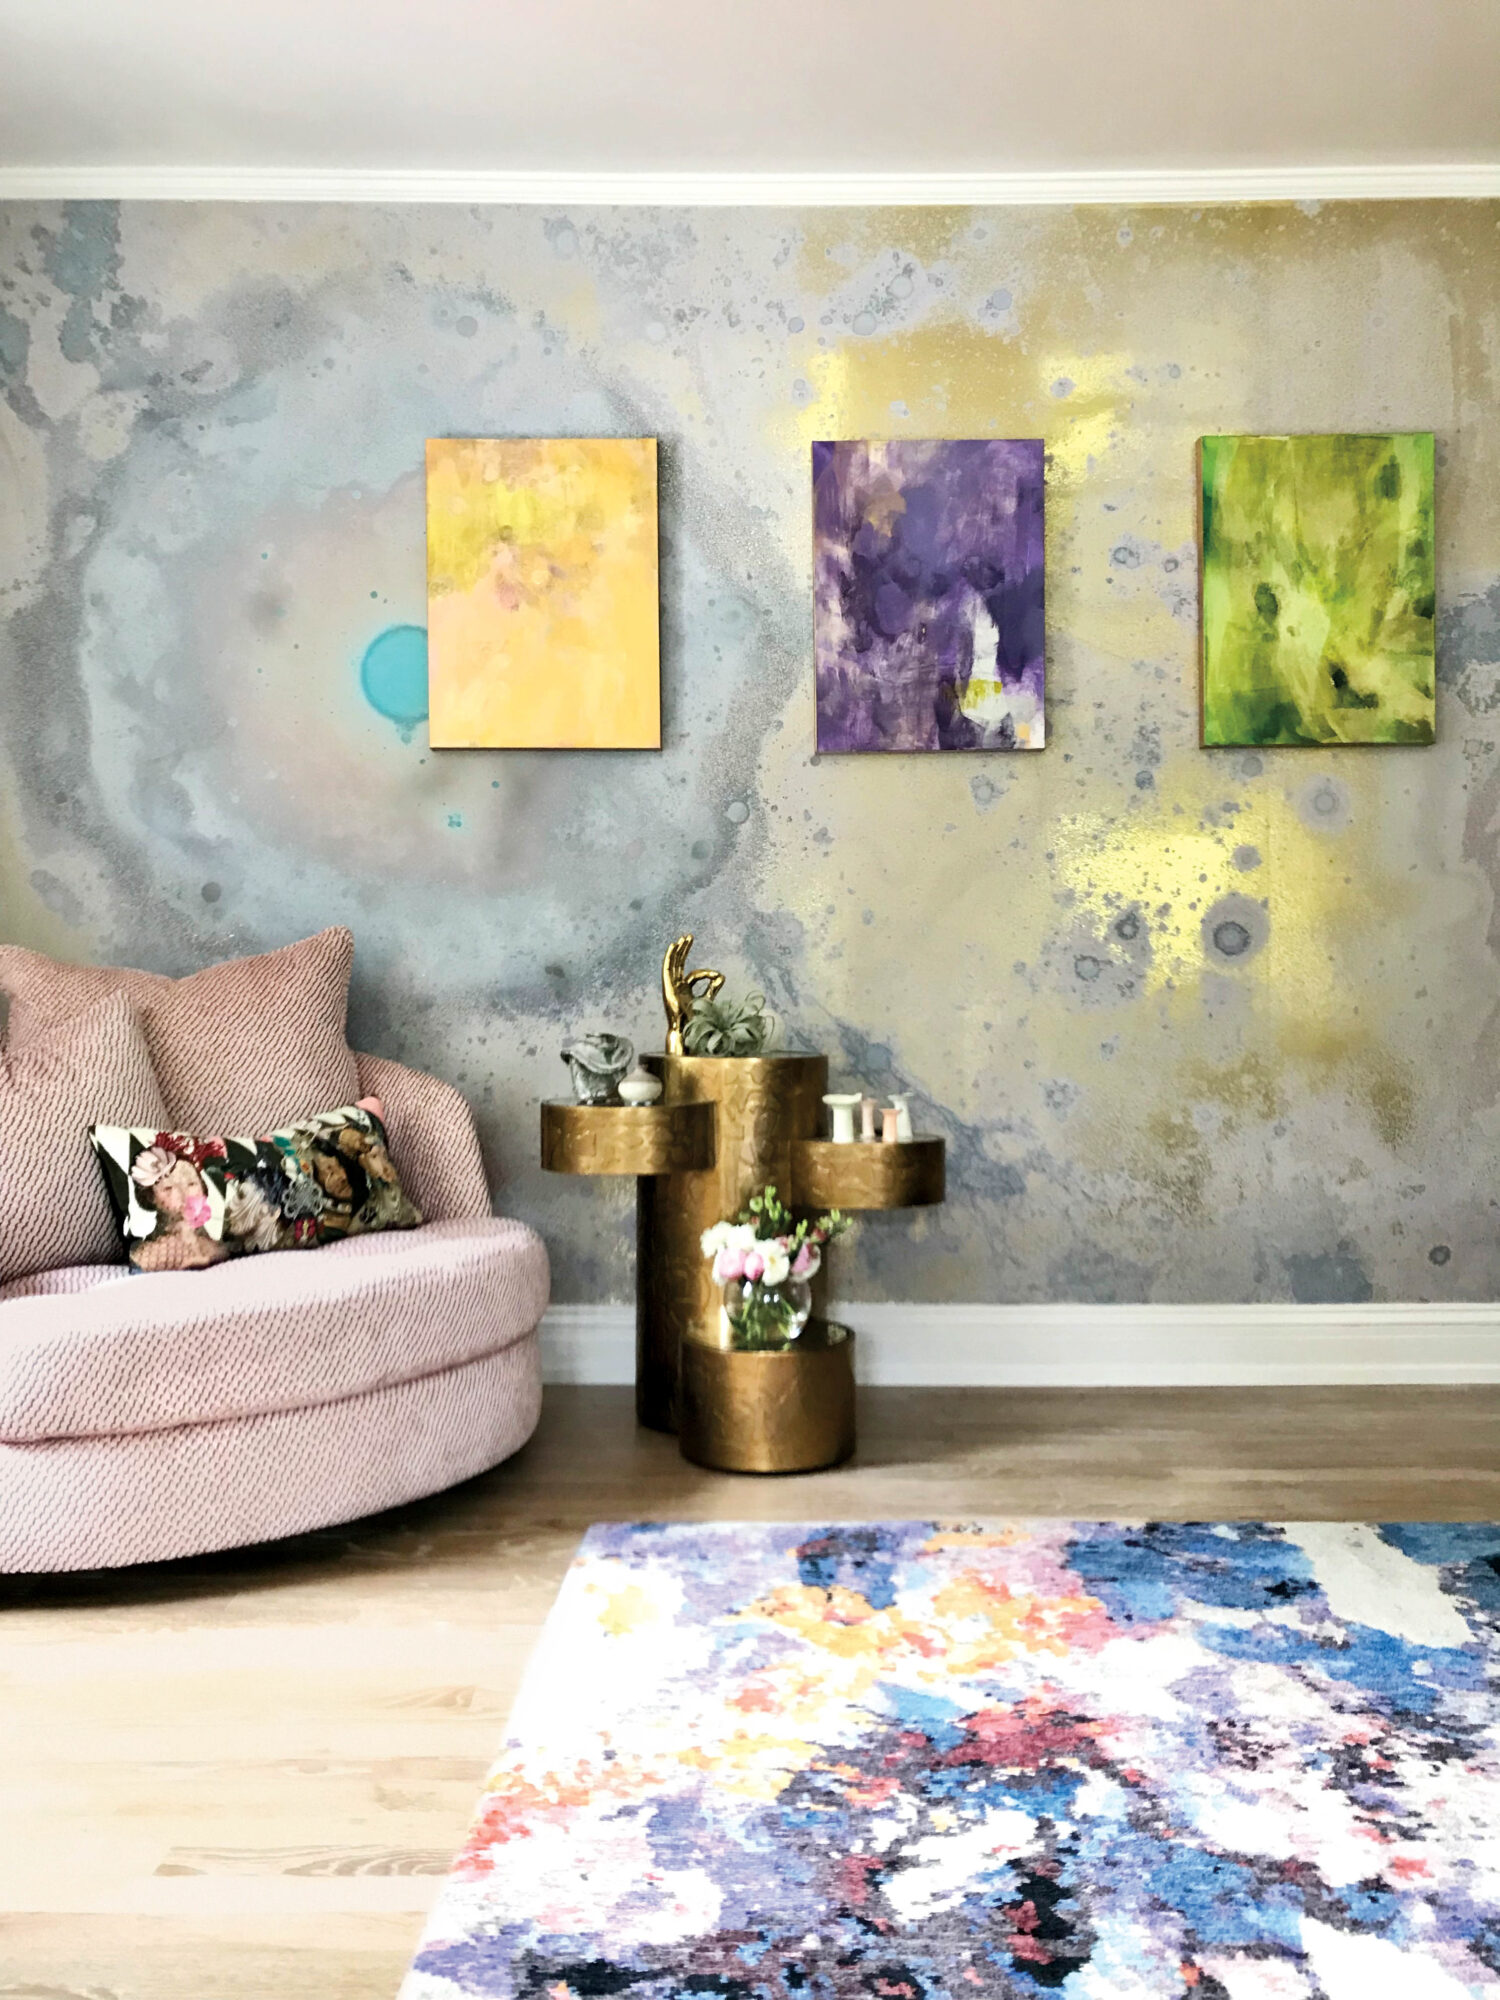 vignette of pink chair, colorful rug and yellow, purple and green artworks